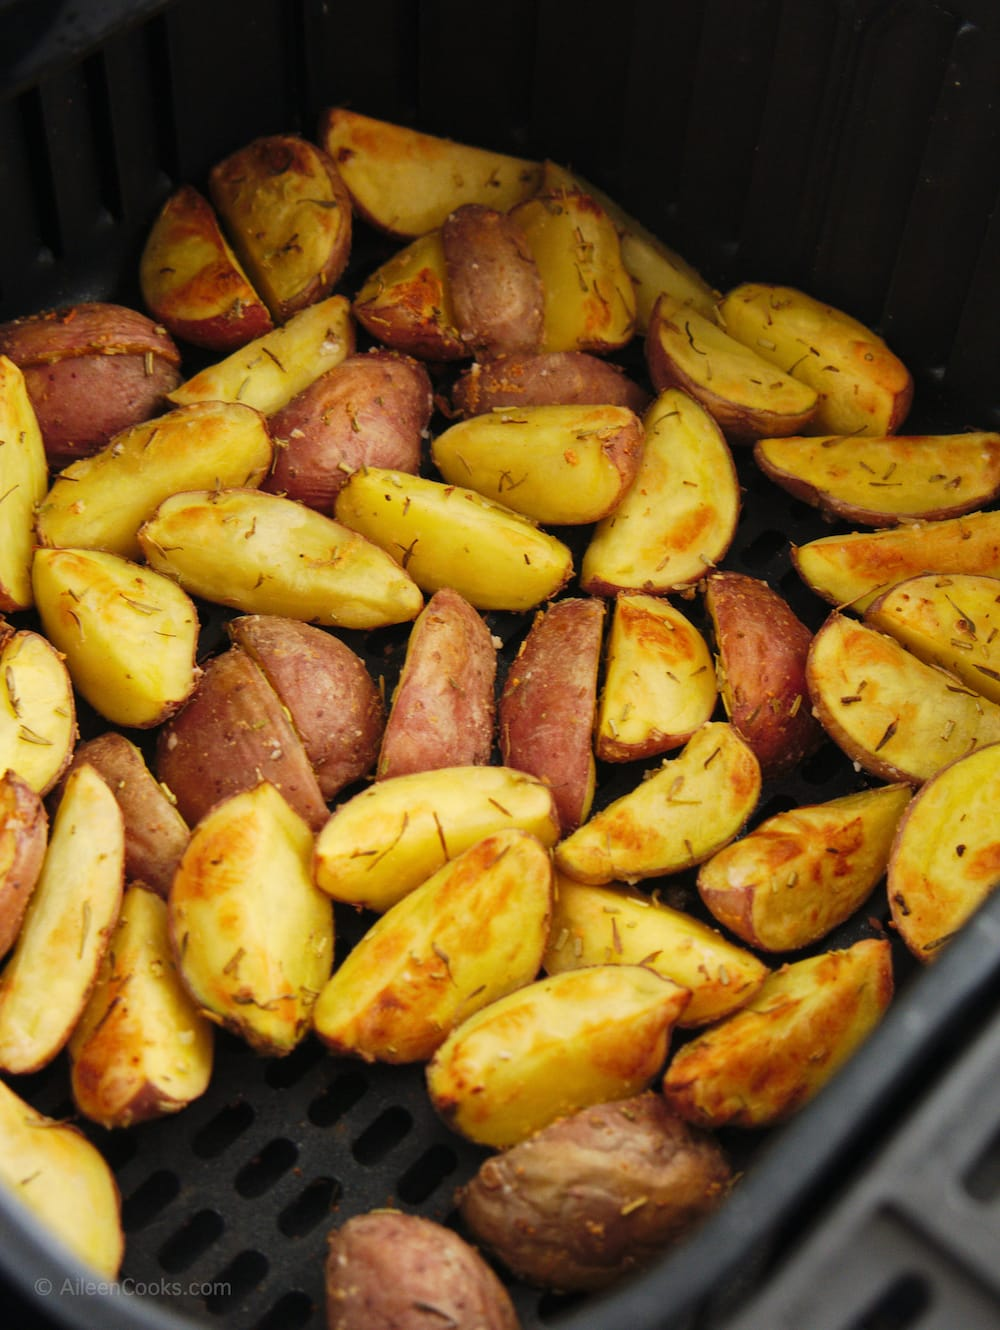 Red potatoes in air fryer after being cooked 10 minutes.